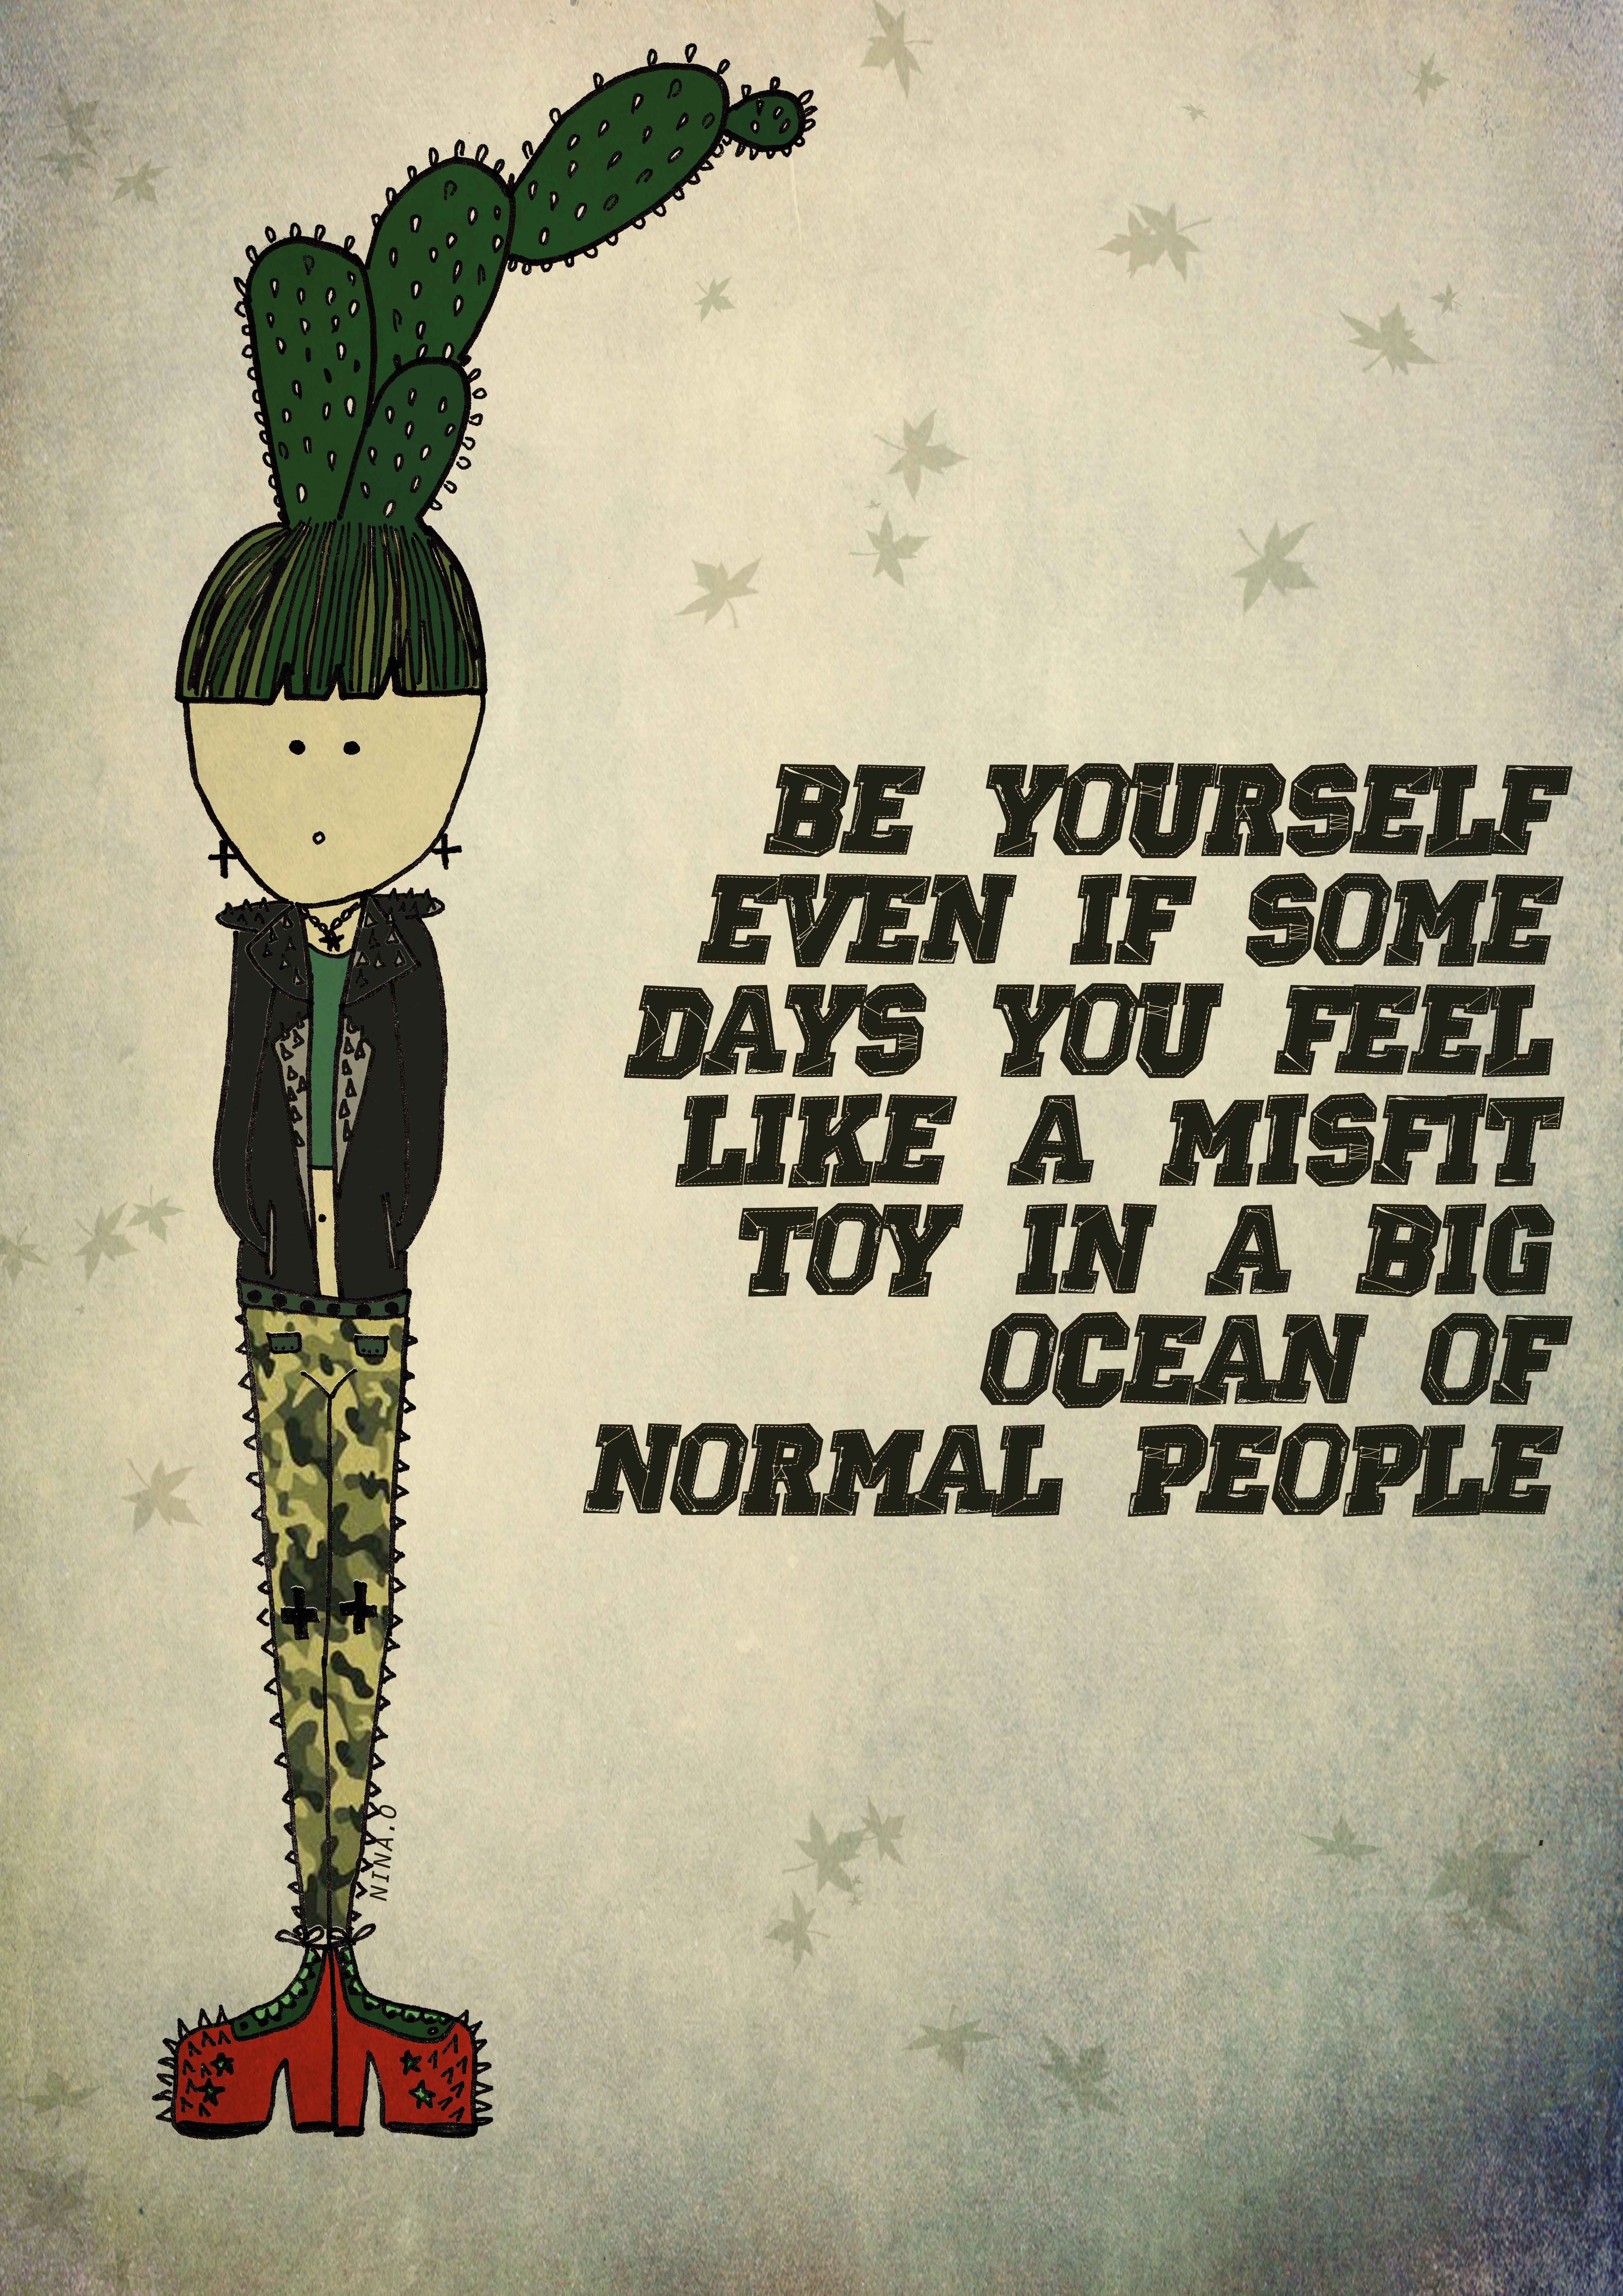 perks of being yourself Even though everyone tells me to be myself, and i know that i should, there is still  that pressure of wanting to be liked so, a personal conflicts.